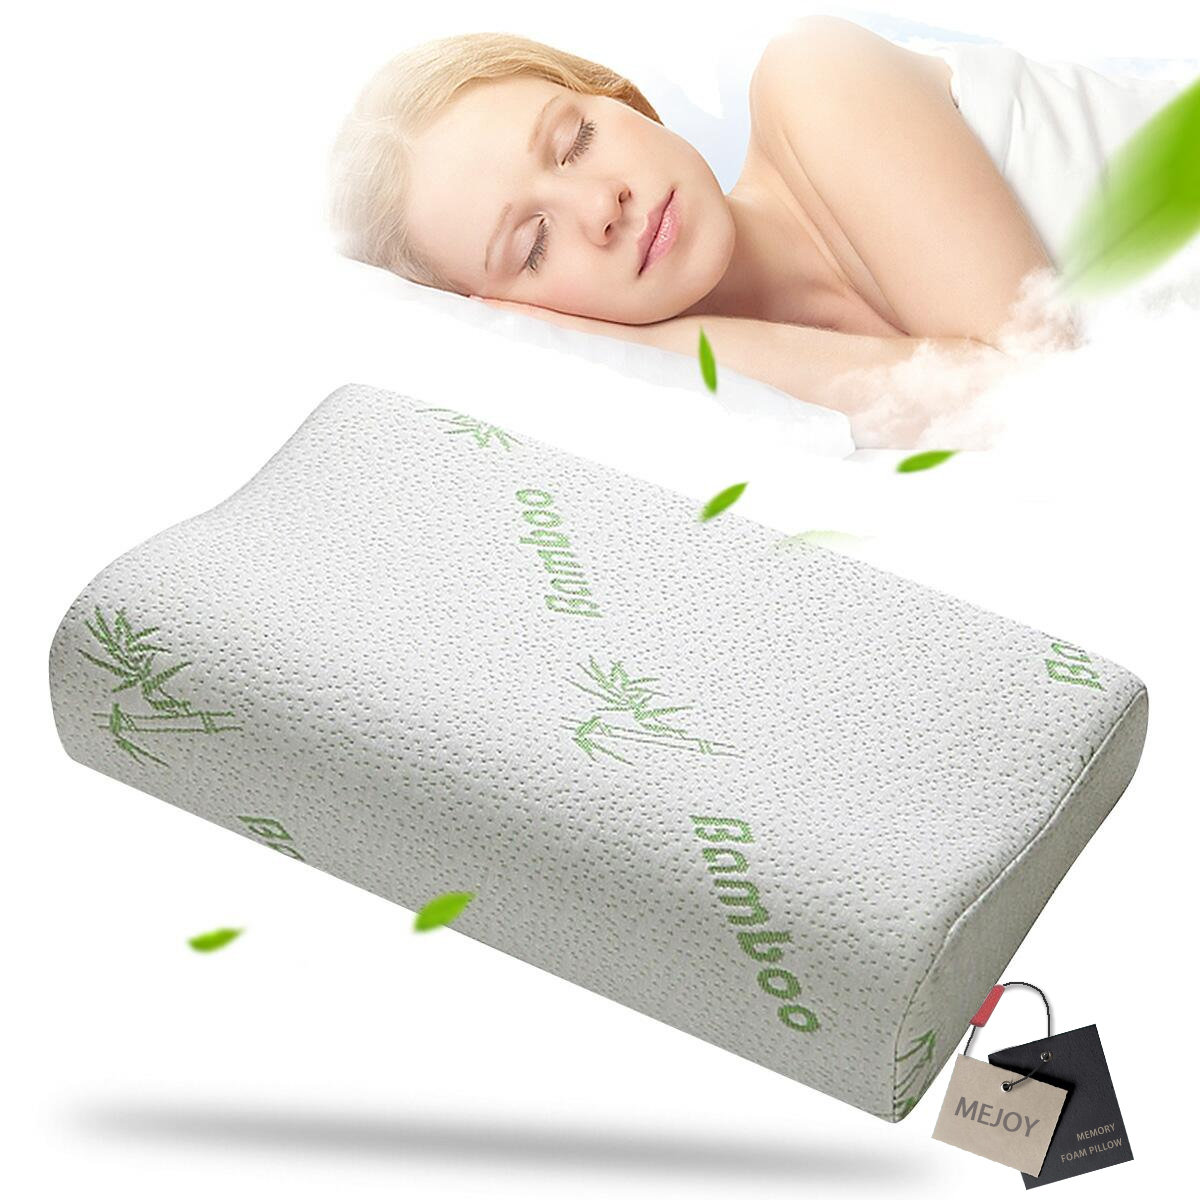 comfort contour orthopedic bamboo fiber sleeping pillow memo